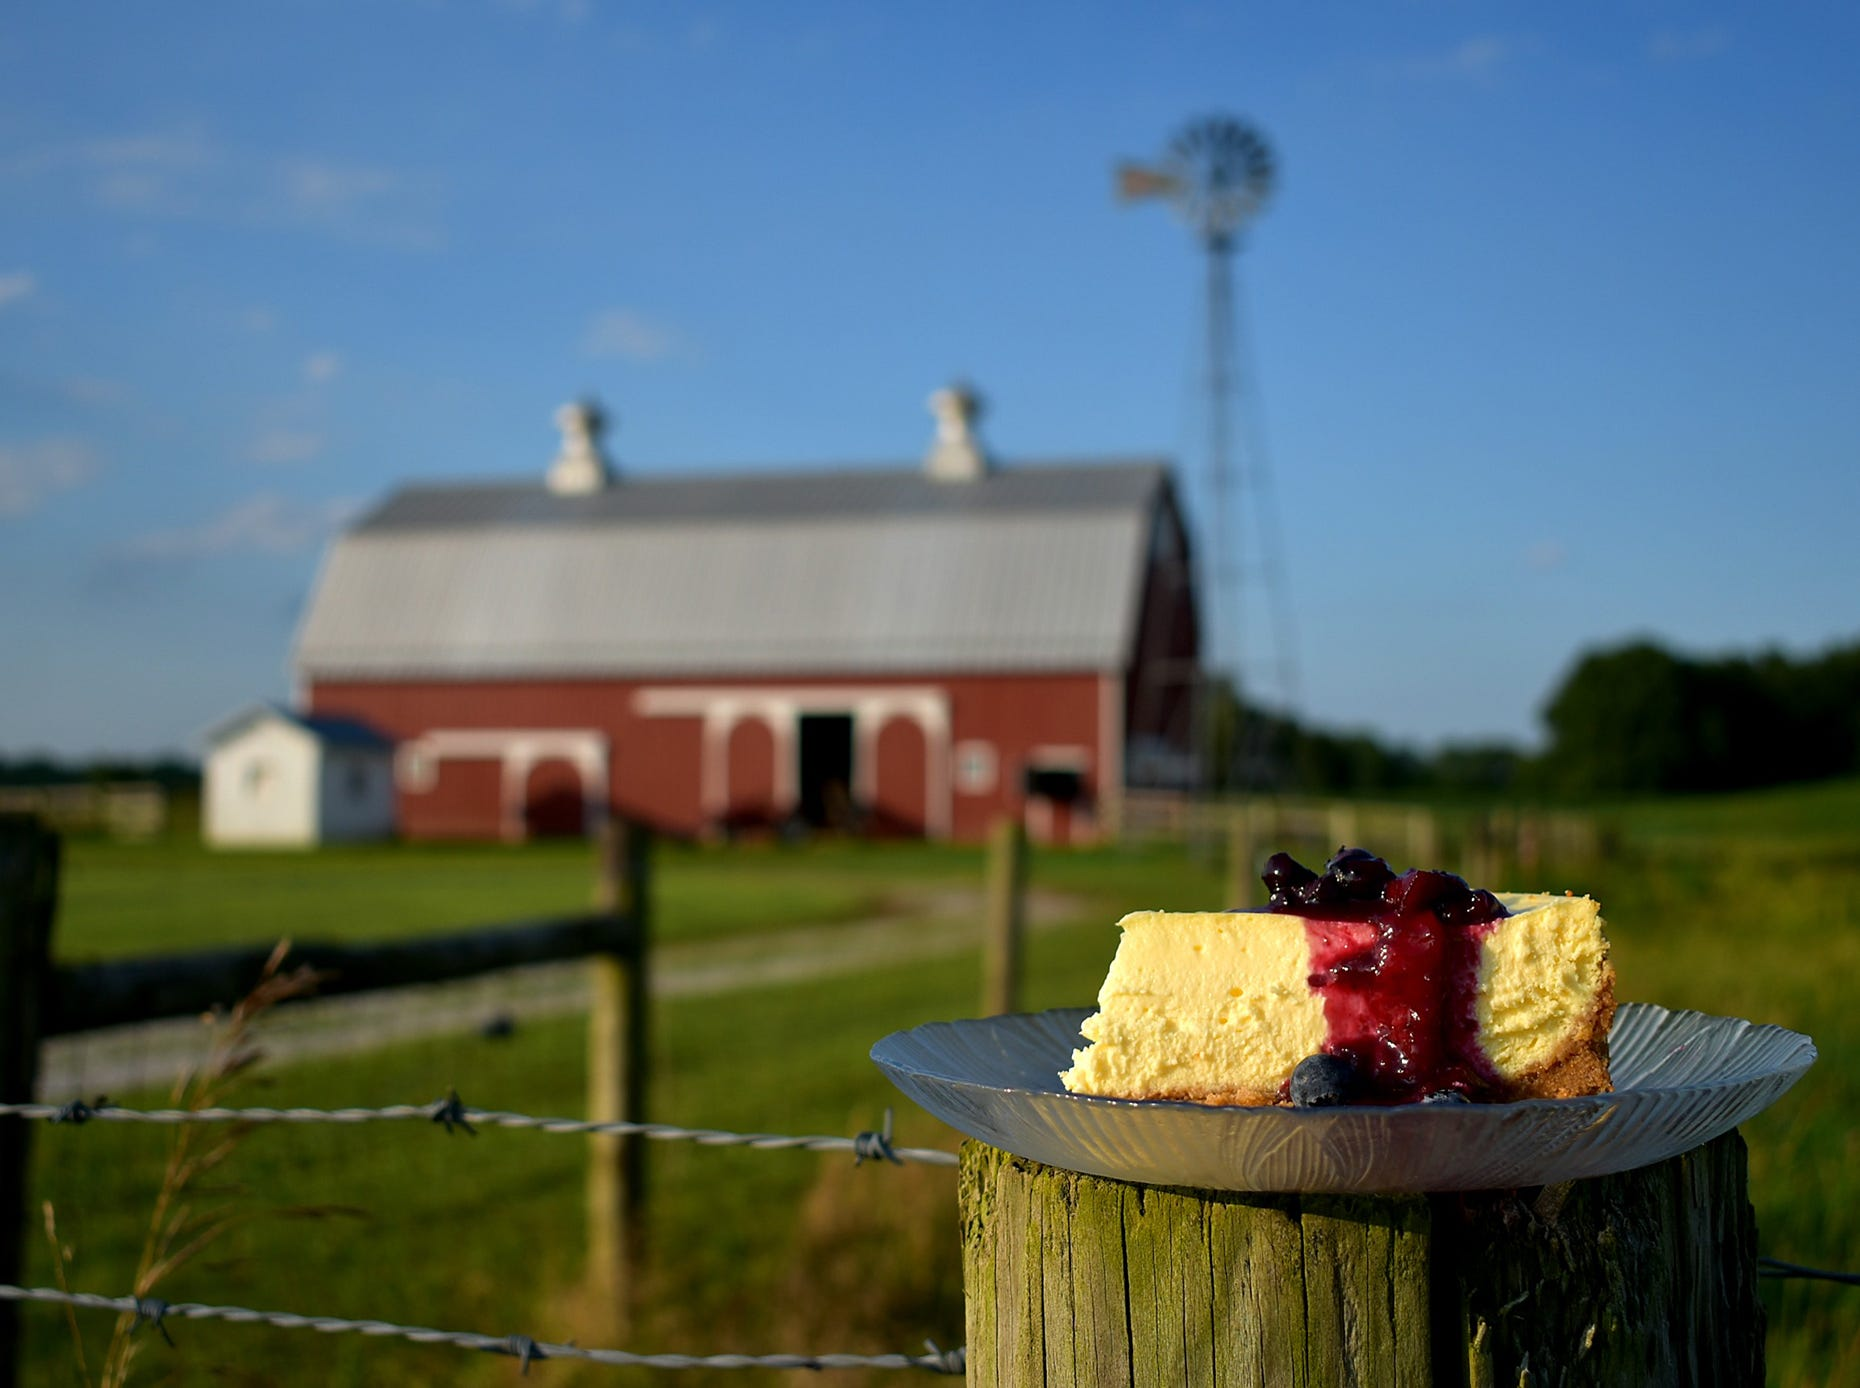 Much of the food comes directly from the farm or is locally sourced.